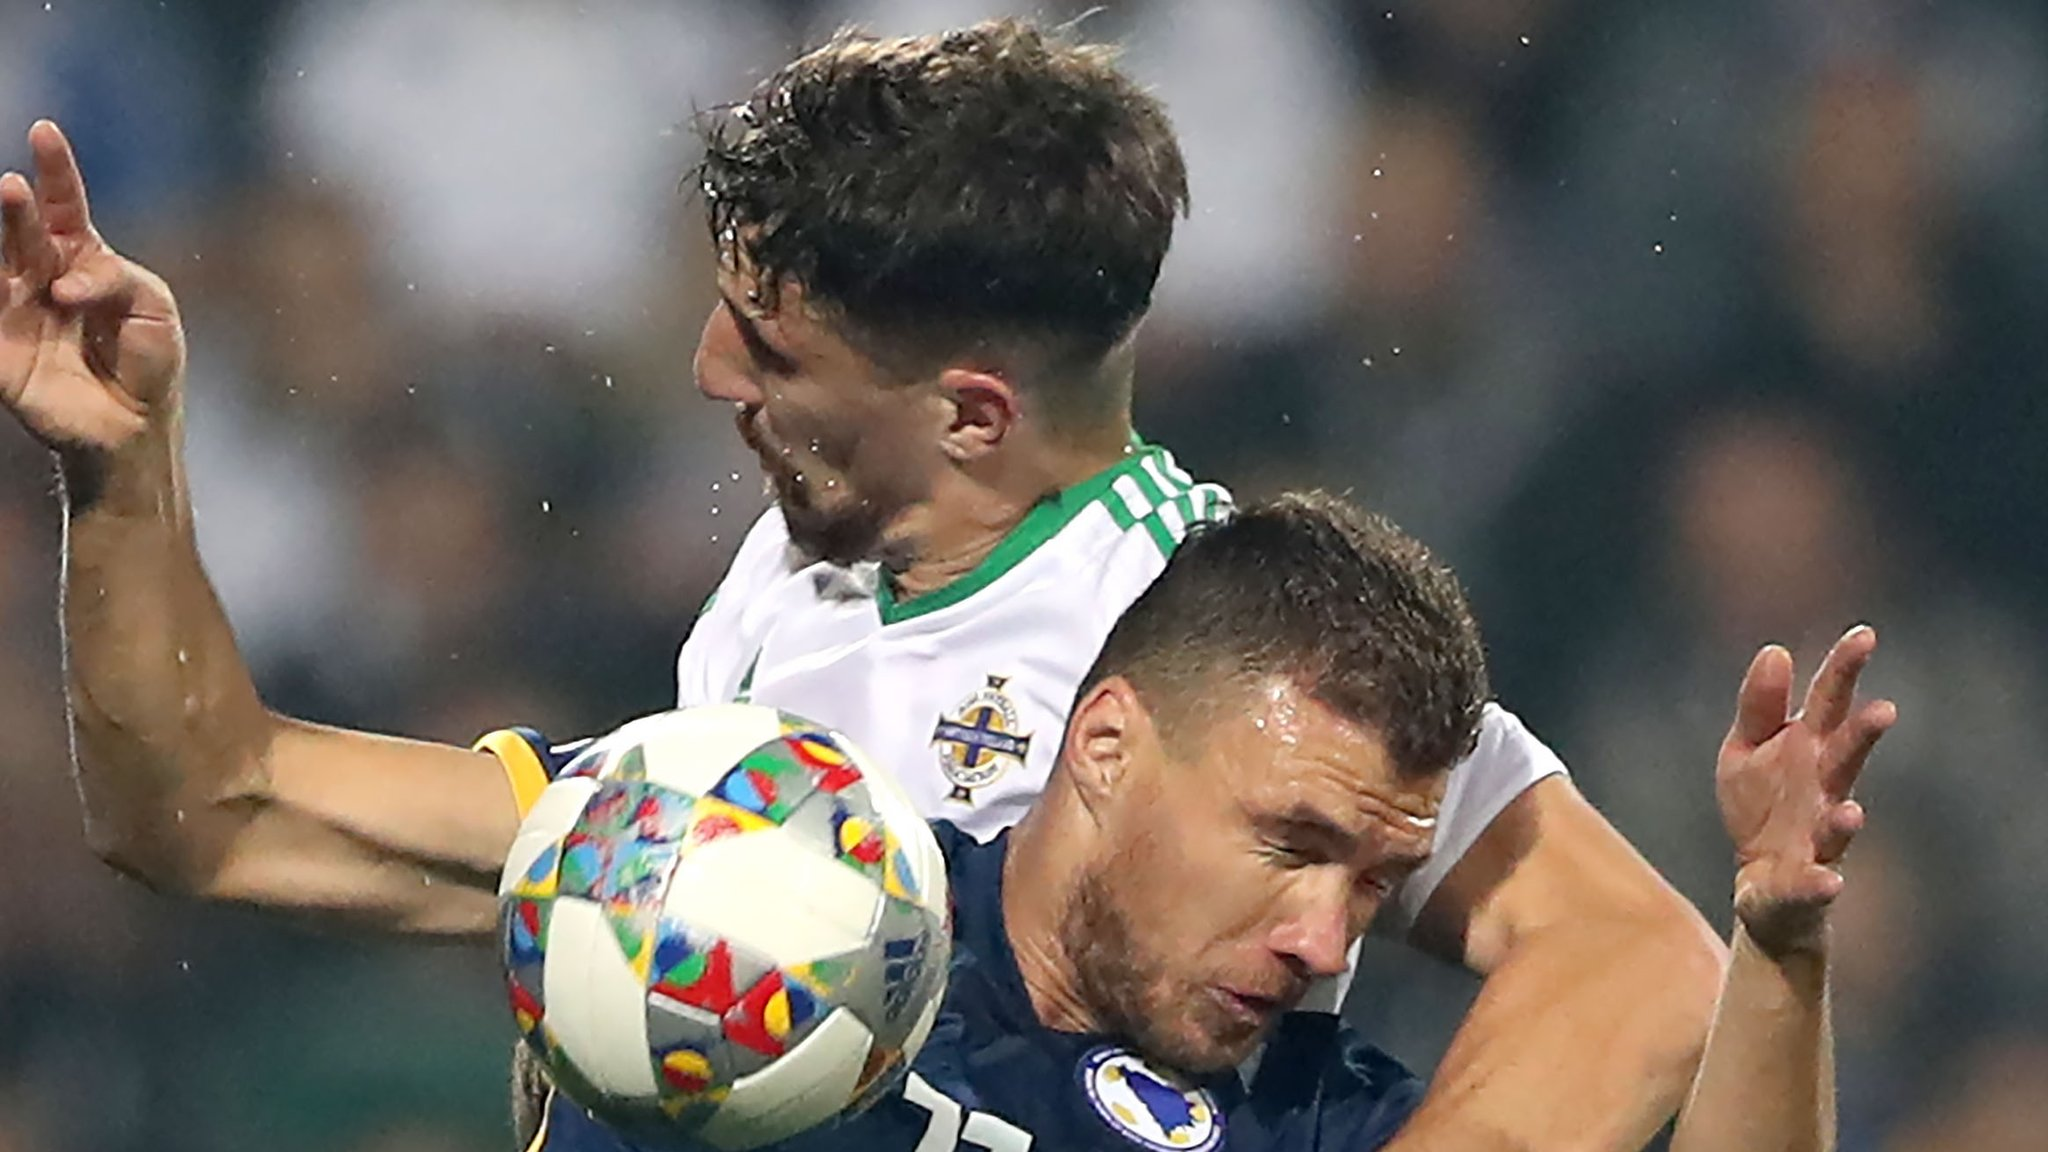 Nations League: Bosnia-Herzegovina 2-0 Northern Ireland